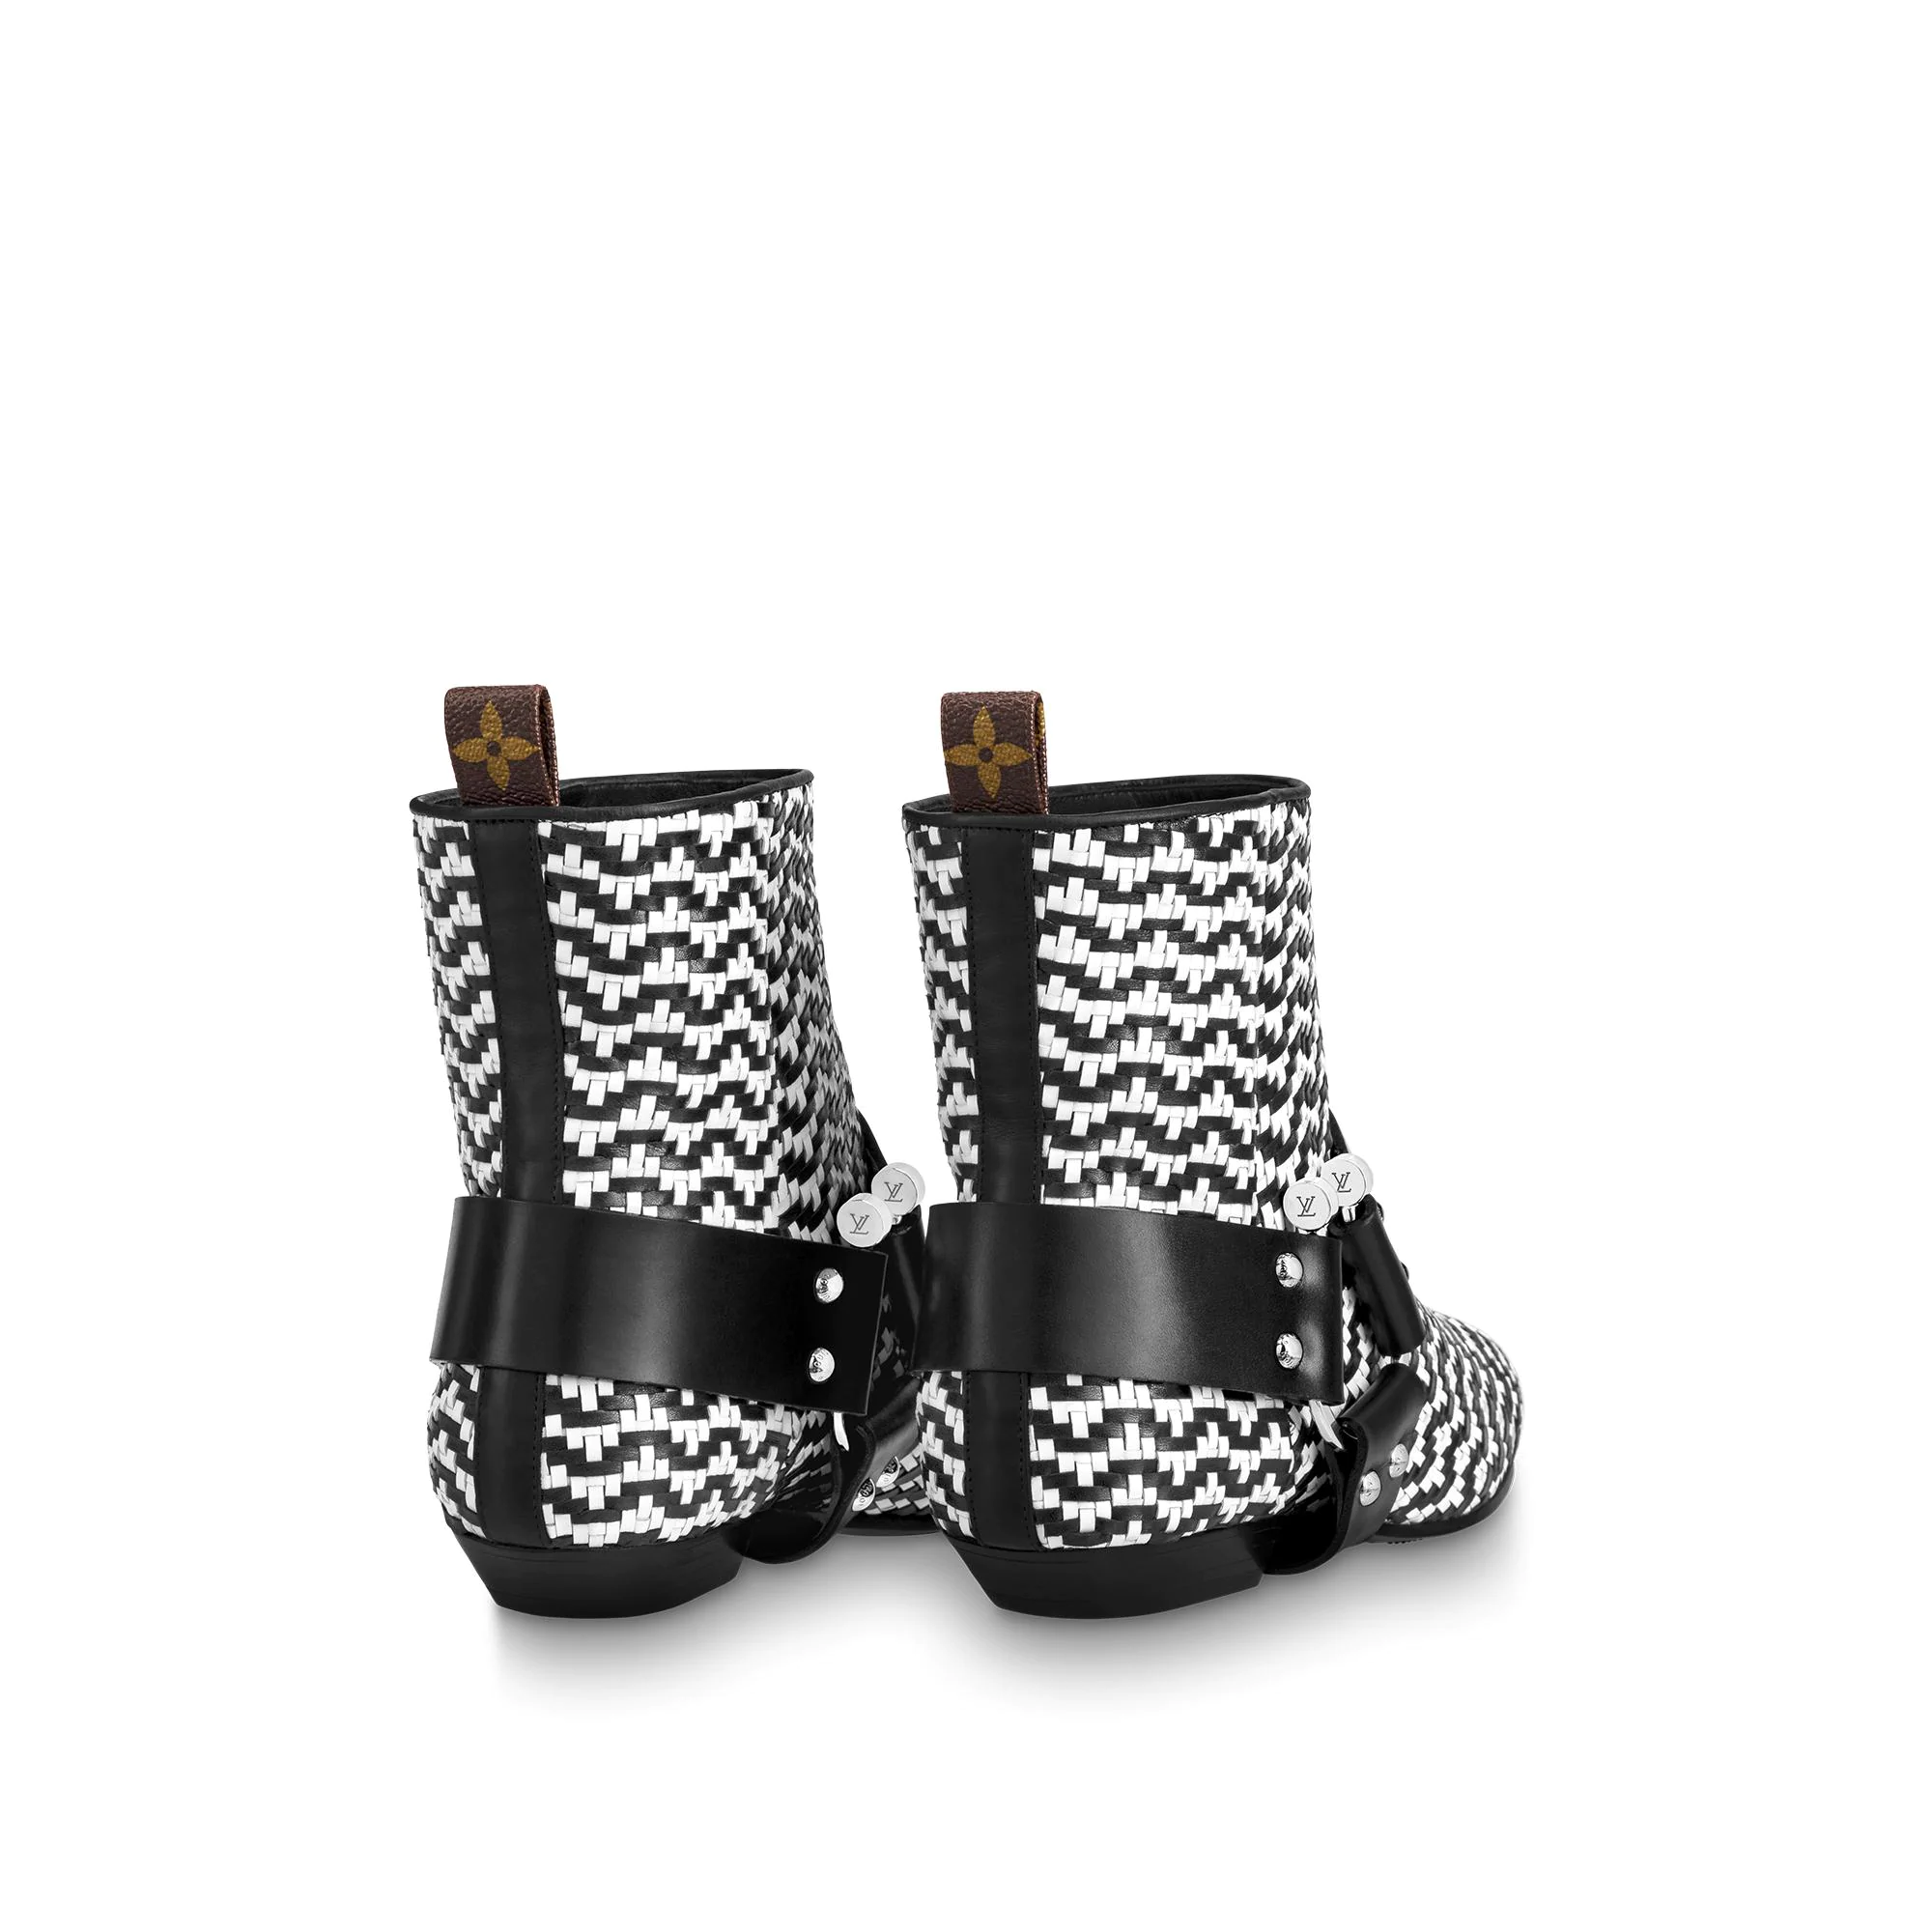 유럽직배송 루이비통 LOUIS VUITTON Rhapsody Ankle Boots 1A5SMX